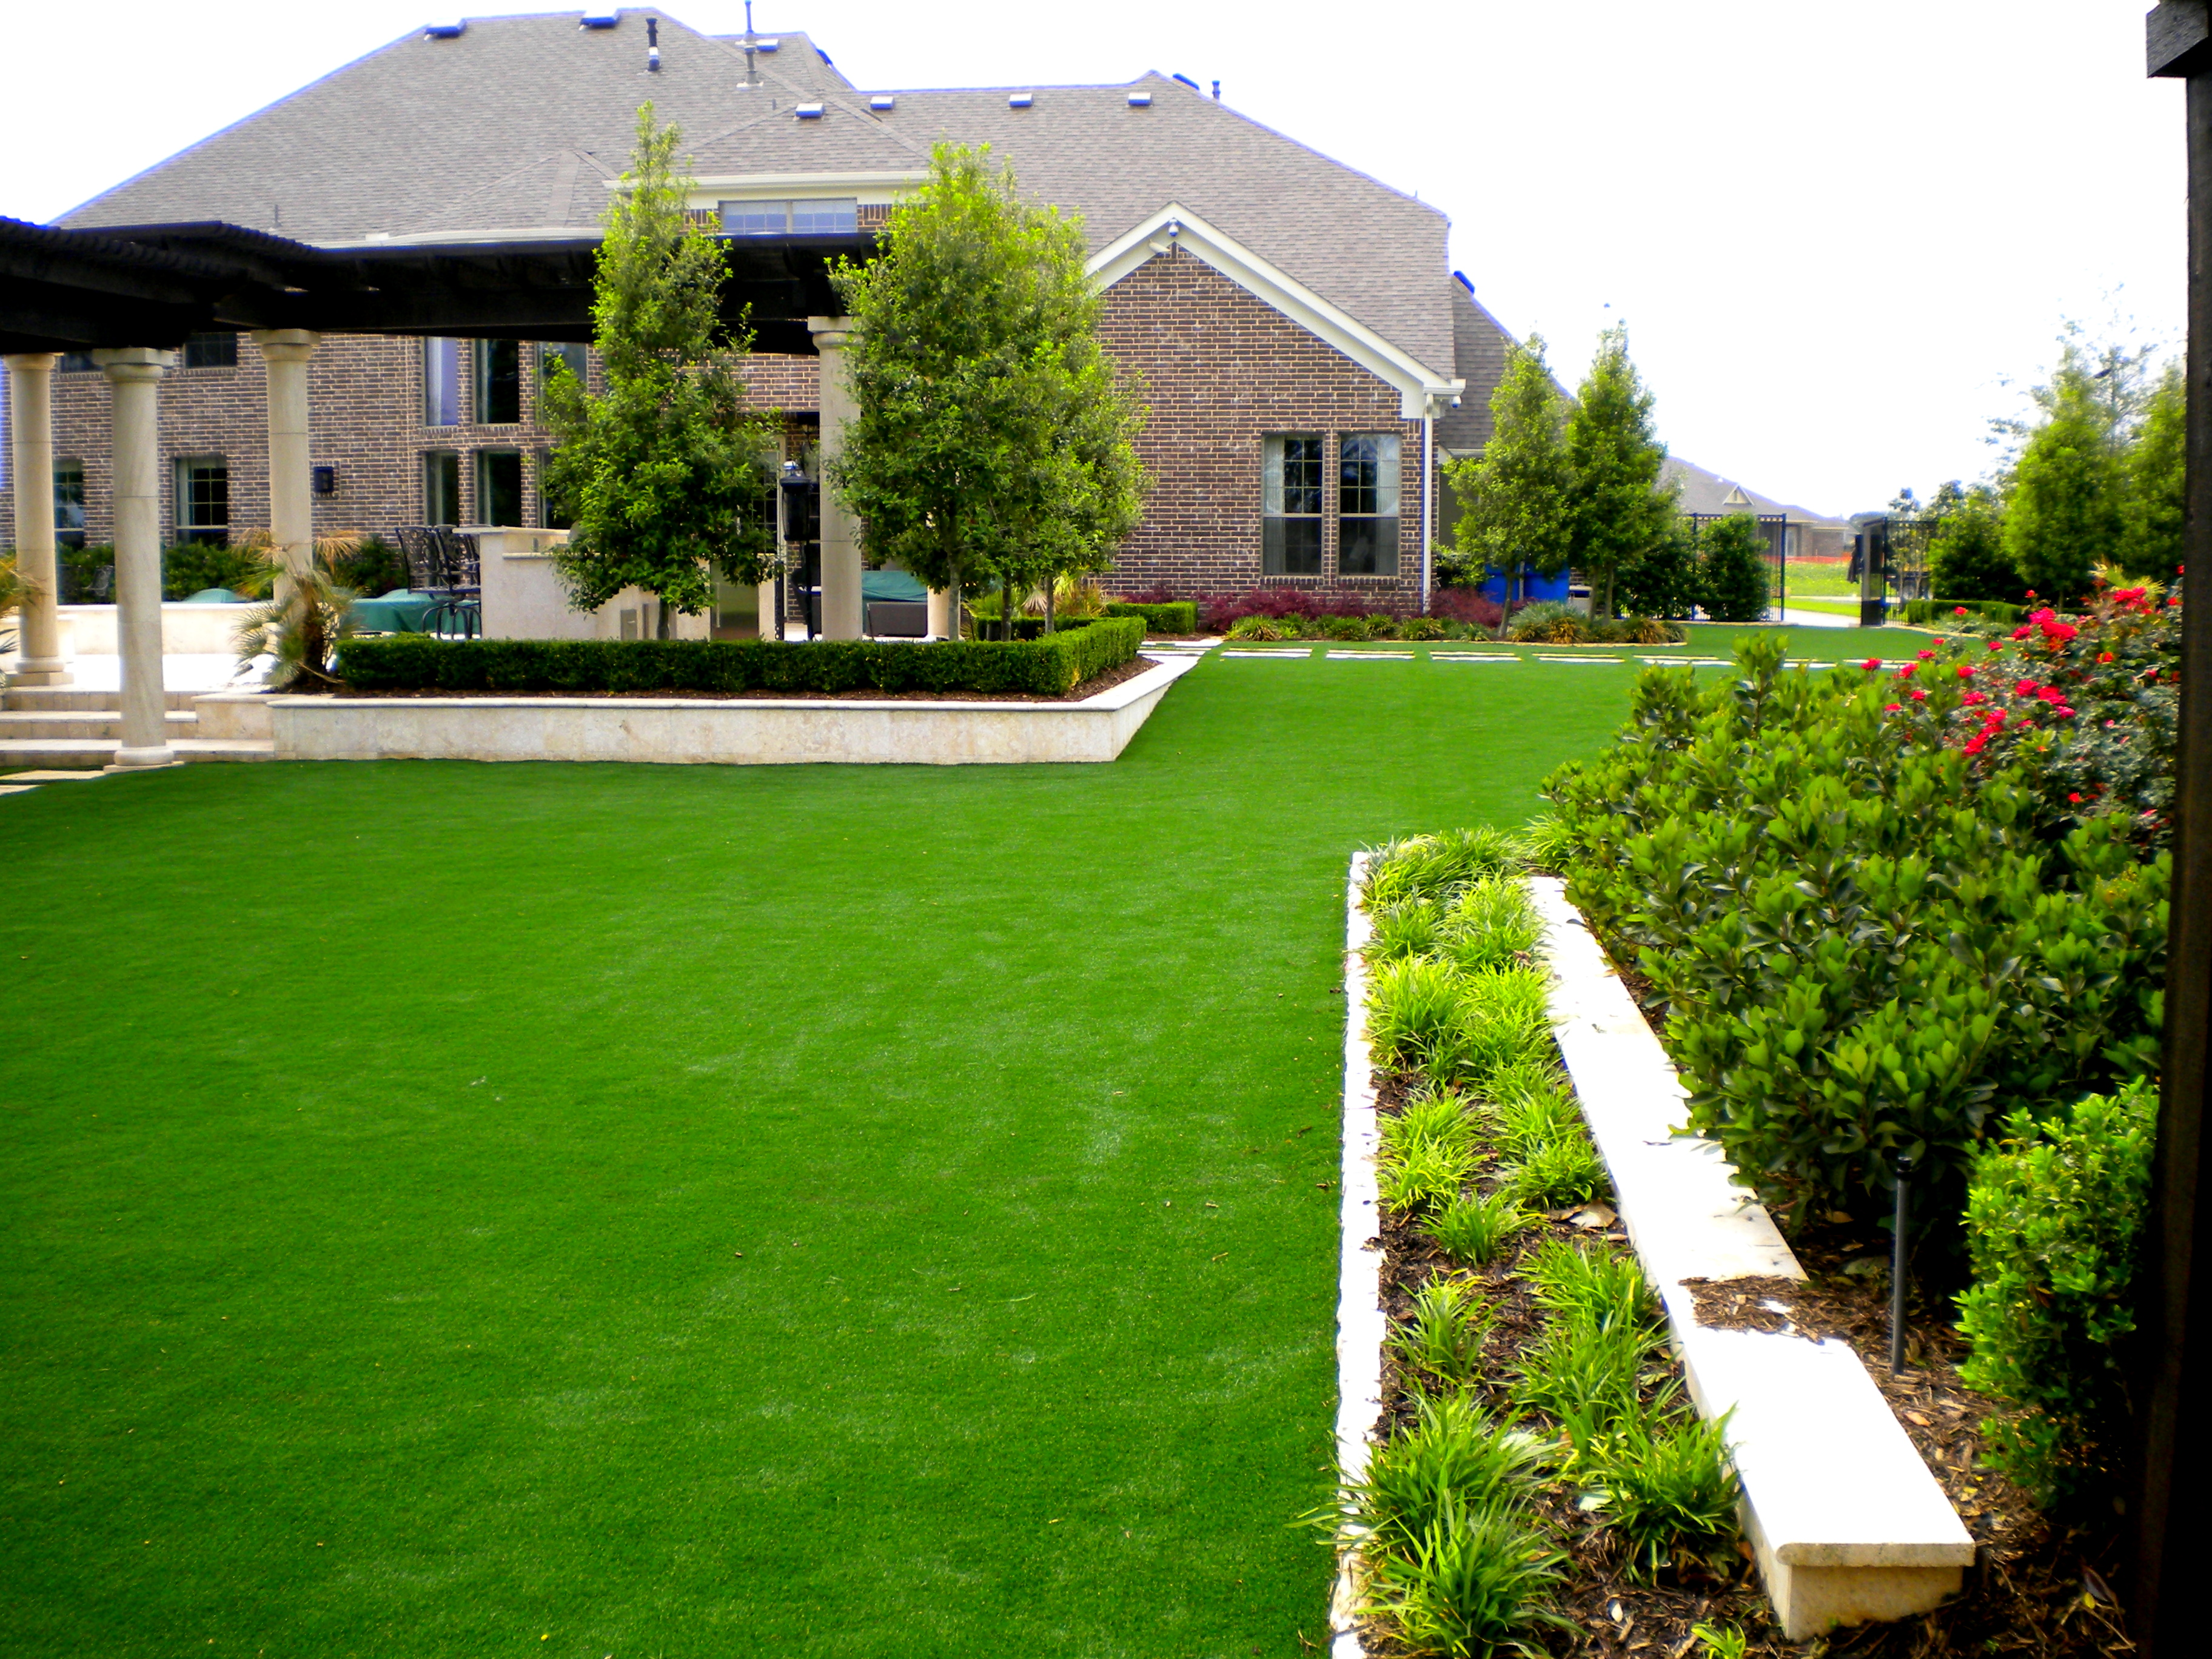 It s great that children can play on artificial turf from